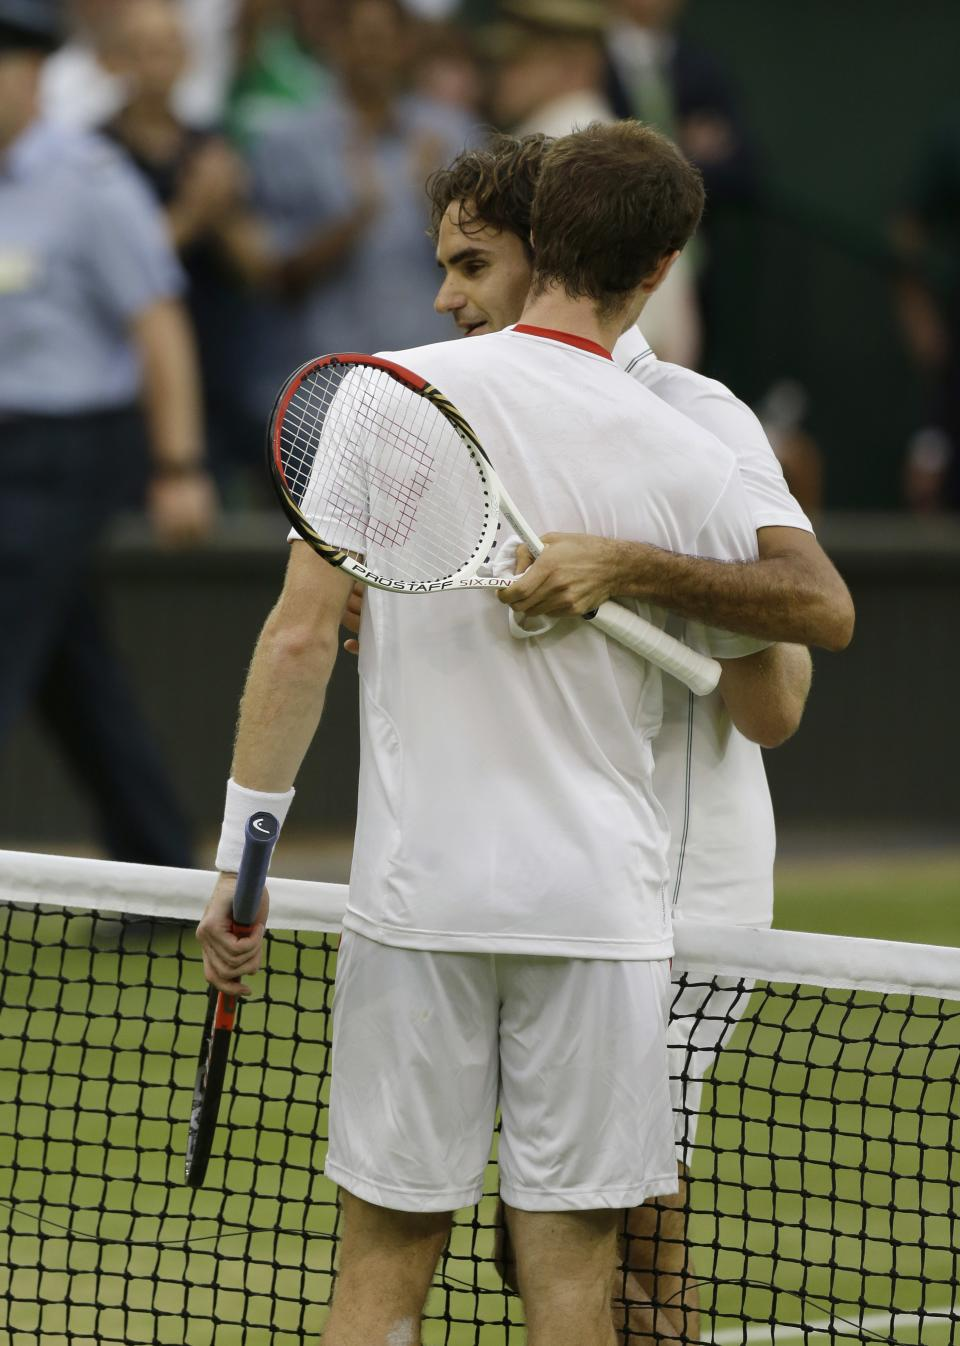 Roger Federer of Switzerland, back, is congratulated by Andy Murray of Britain after winning the men's singles final against  at the All England Lawn Tennis Championships at Wimbledon, England, Sunday, July 8, 2012. (AP Photo/Anja Niedringhaus)